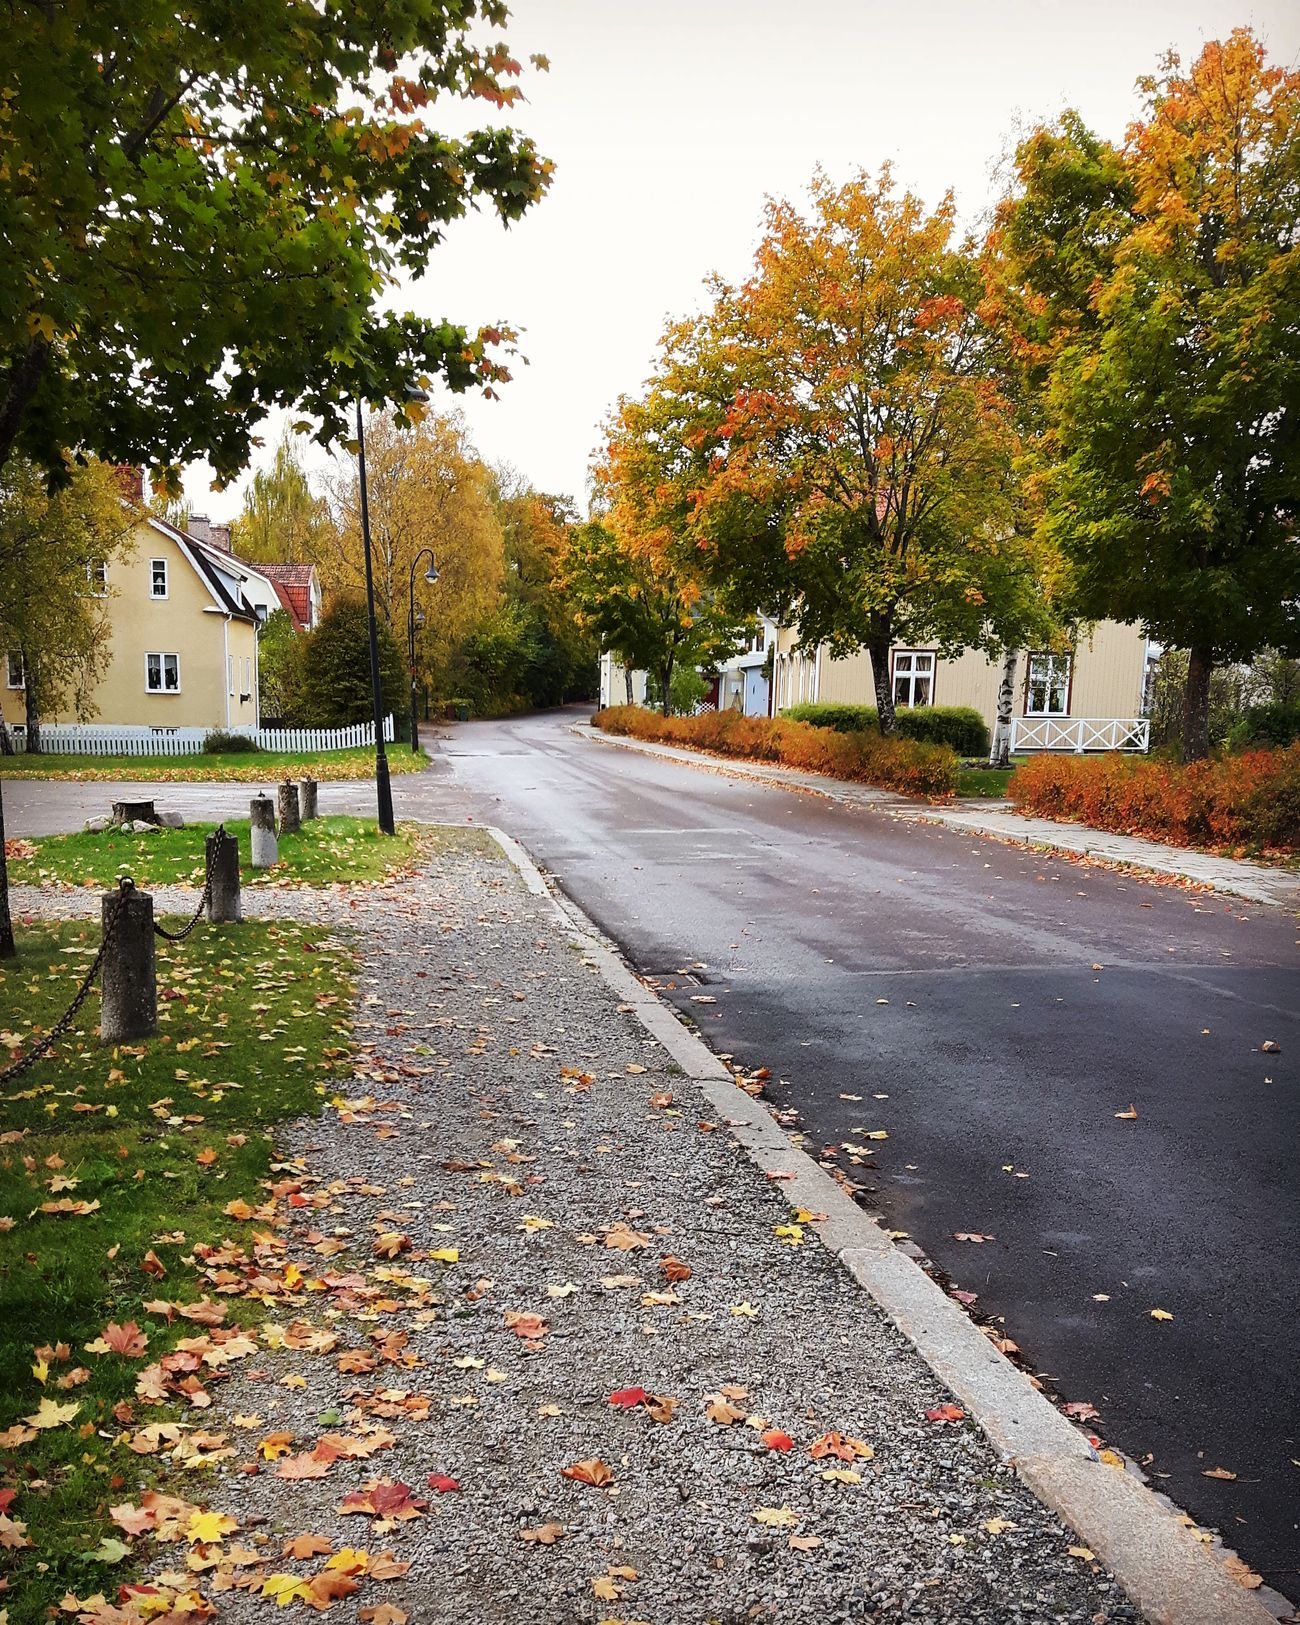 In Smedjebacken Dalarna, Sweden. Was there to visit my grand parents. Its nice to know that you have family that no matter what will always have room for you Street Outdoors Road No People Love Life Love Life Is Adventure Funtimes Explore Discover Pursue Family Dalarna Sweden Autumn Autumn Colors